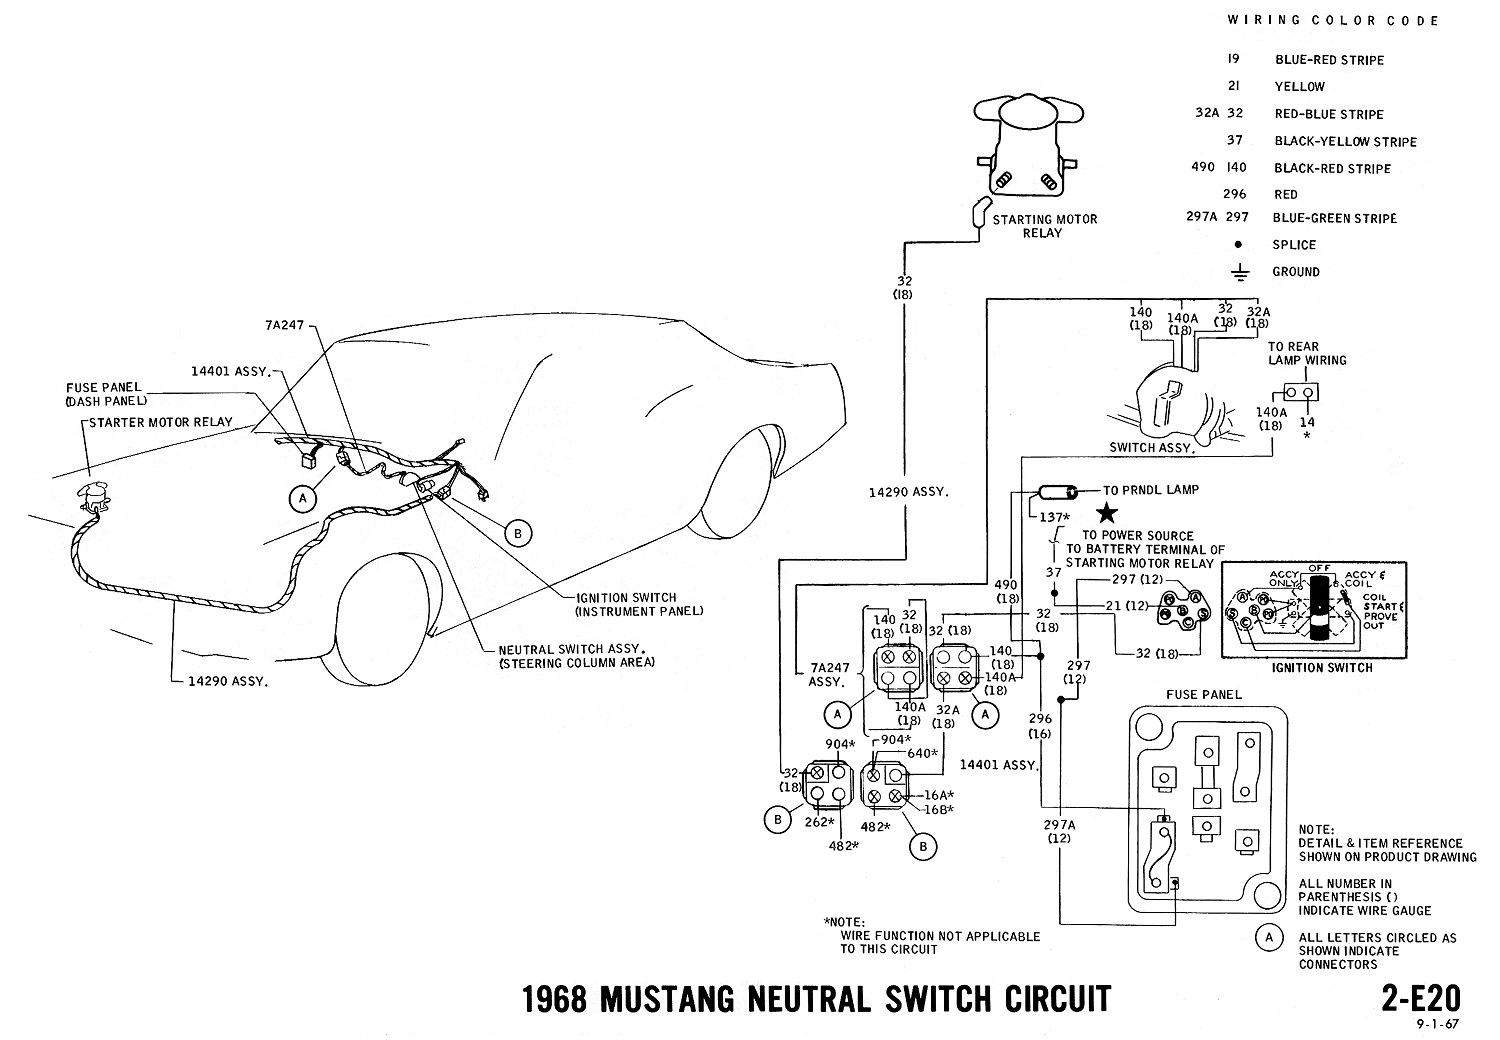 hight resolution of 1968 master wiring diagram neutral switch